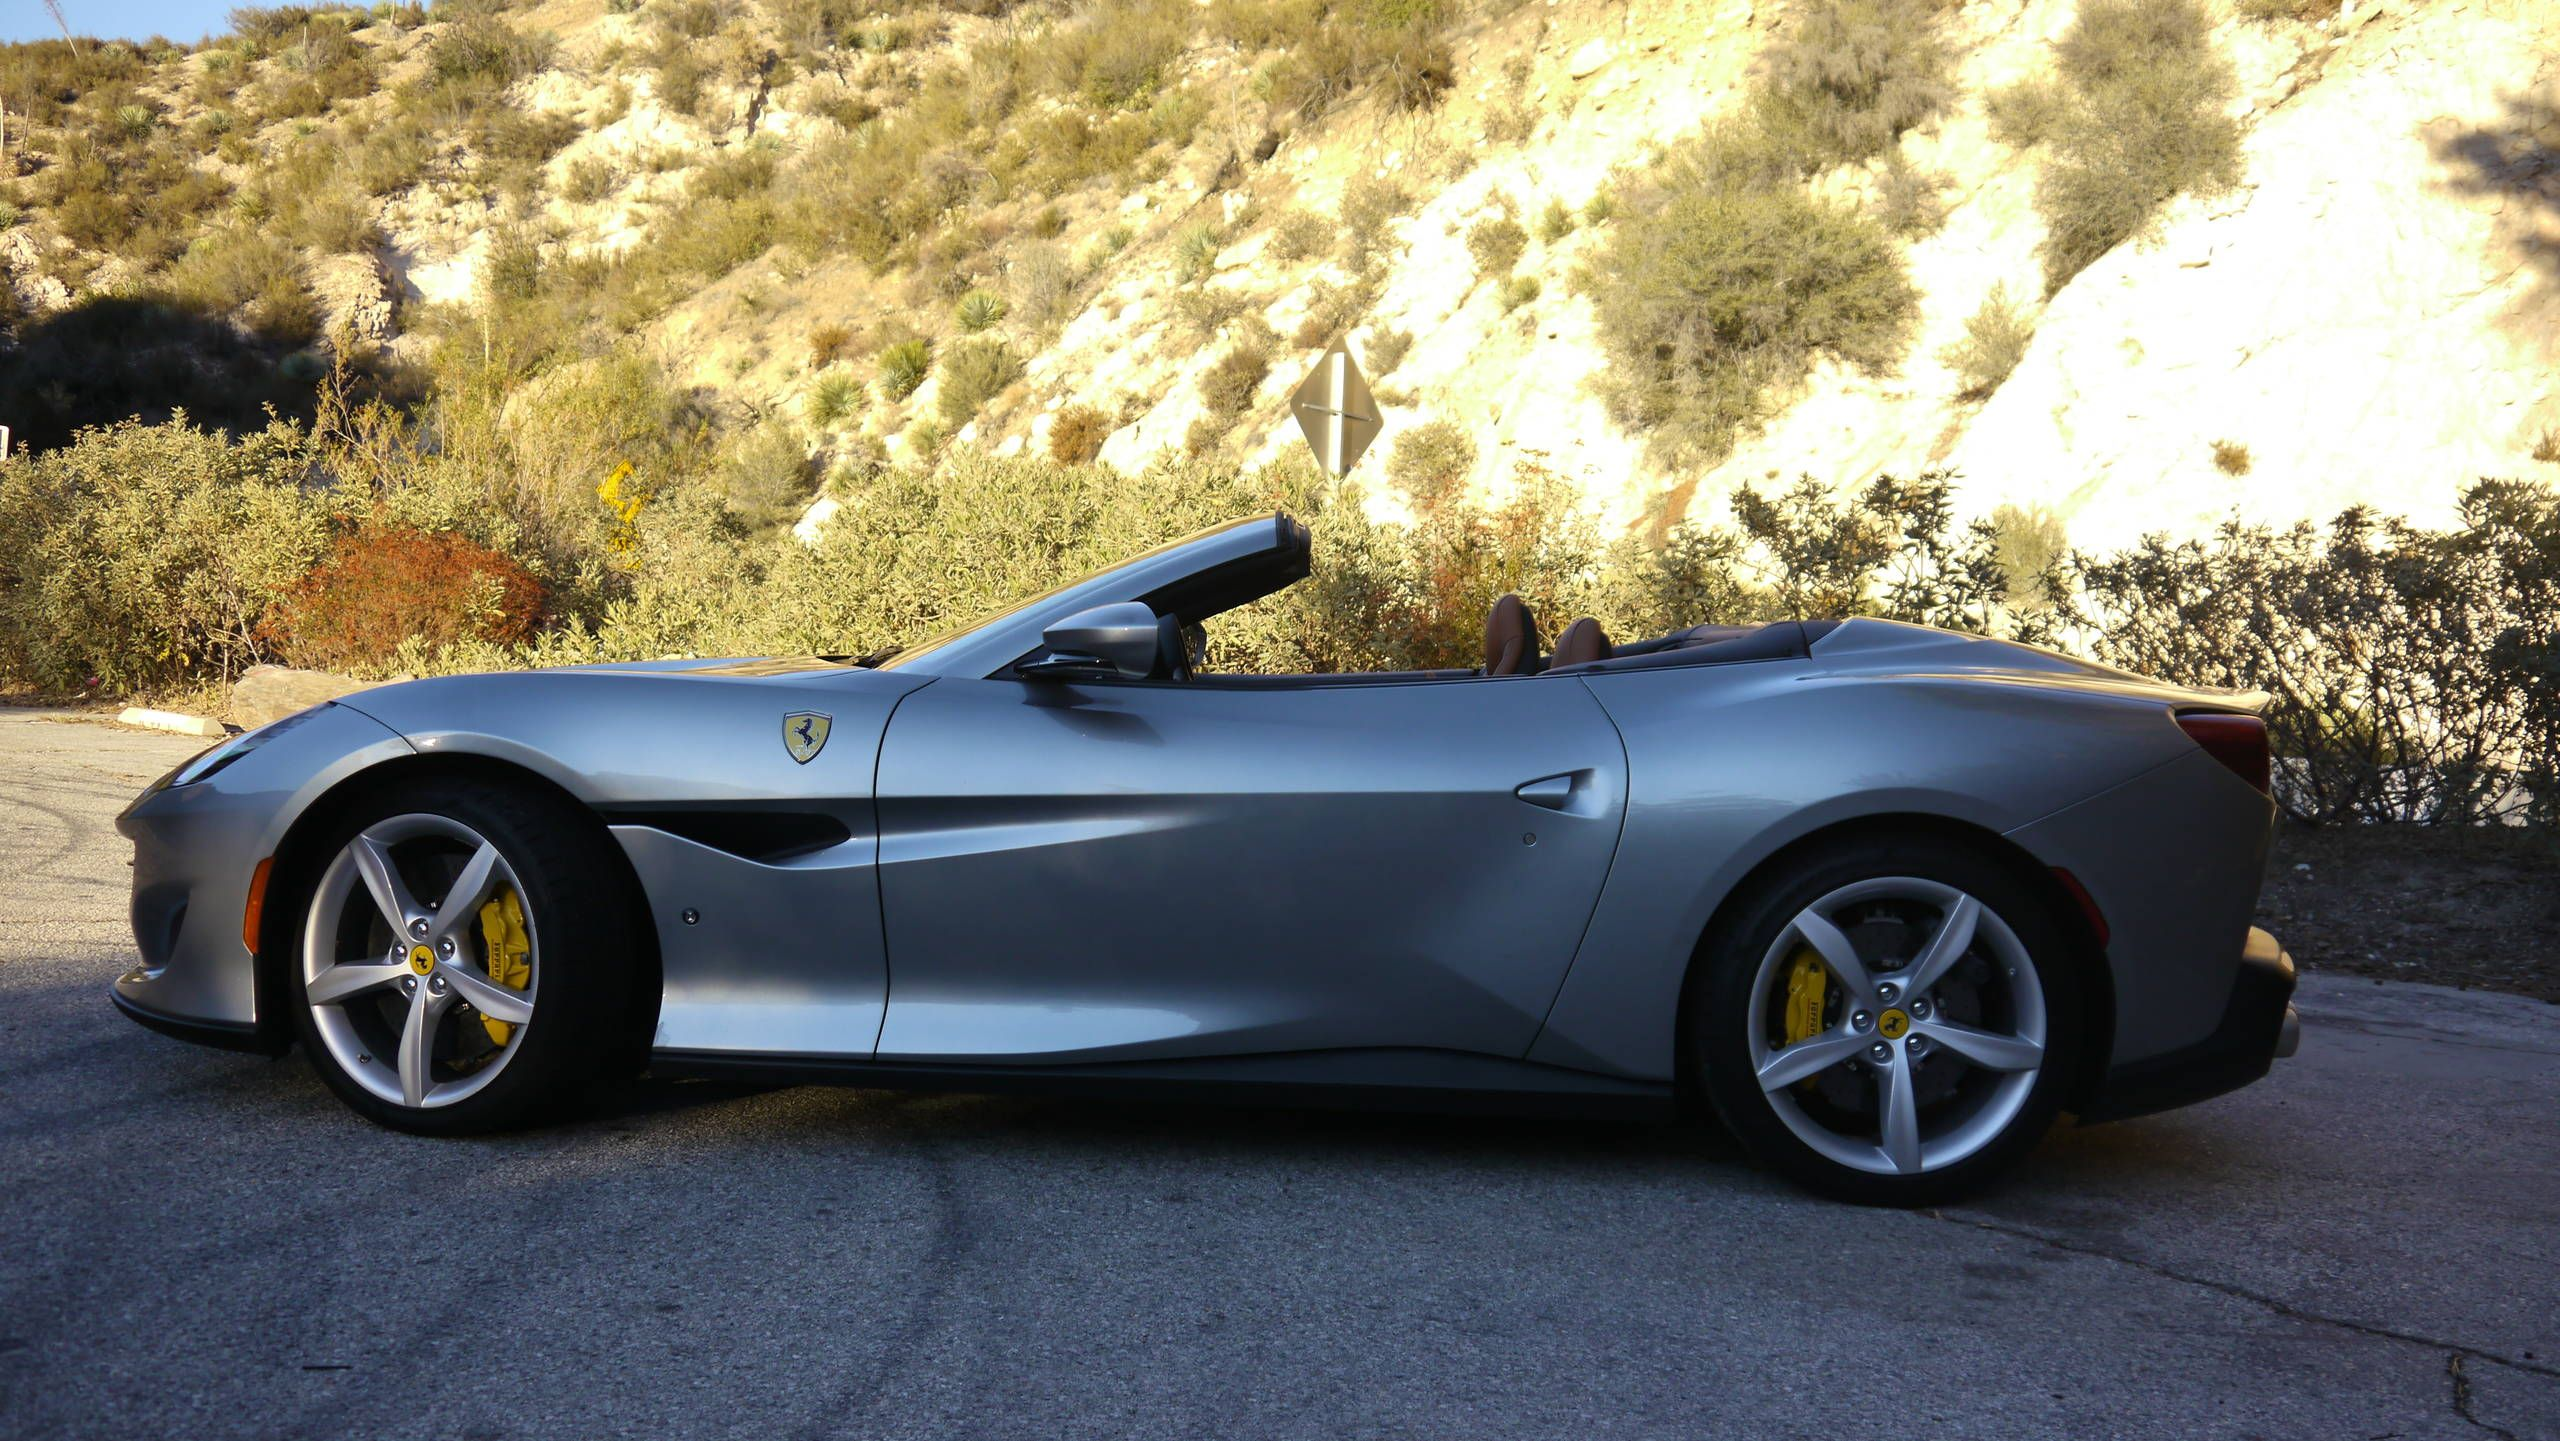 2019 Ferrari Portofino Drive Review 5 Glorious Days Of Speed Comfort And A 2 531 Cupholder